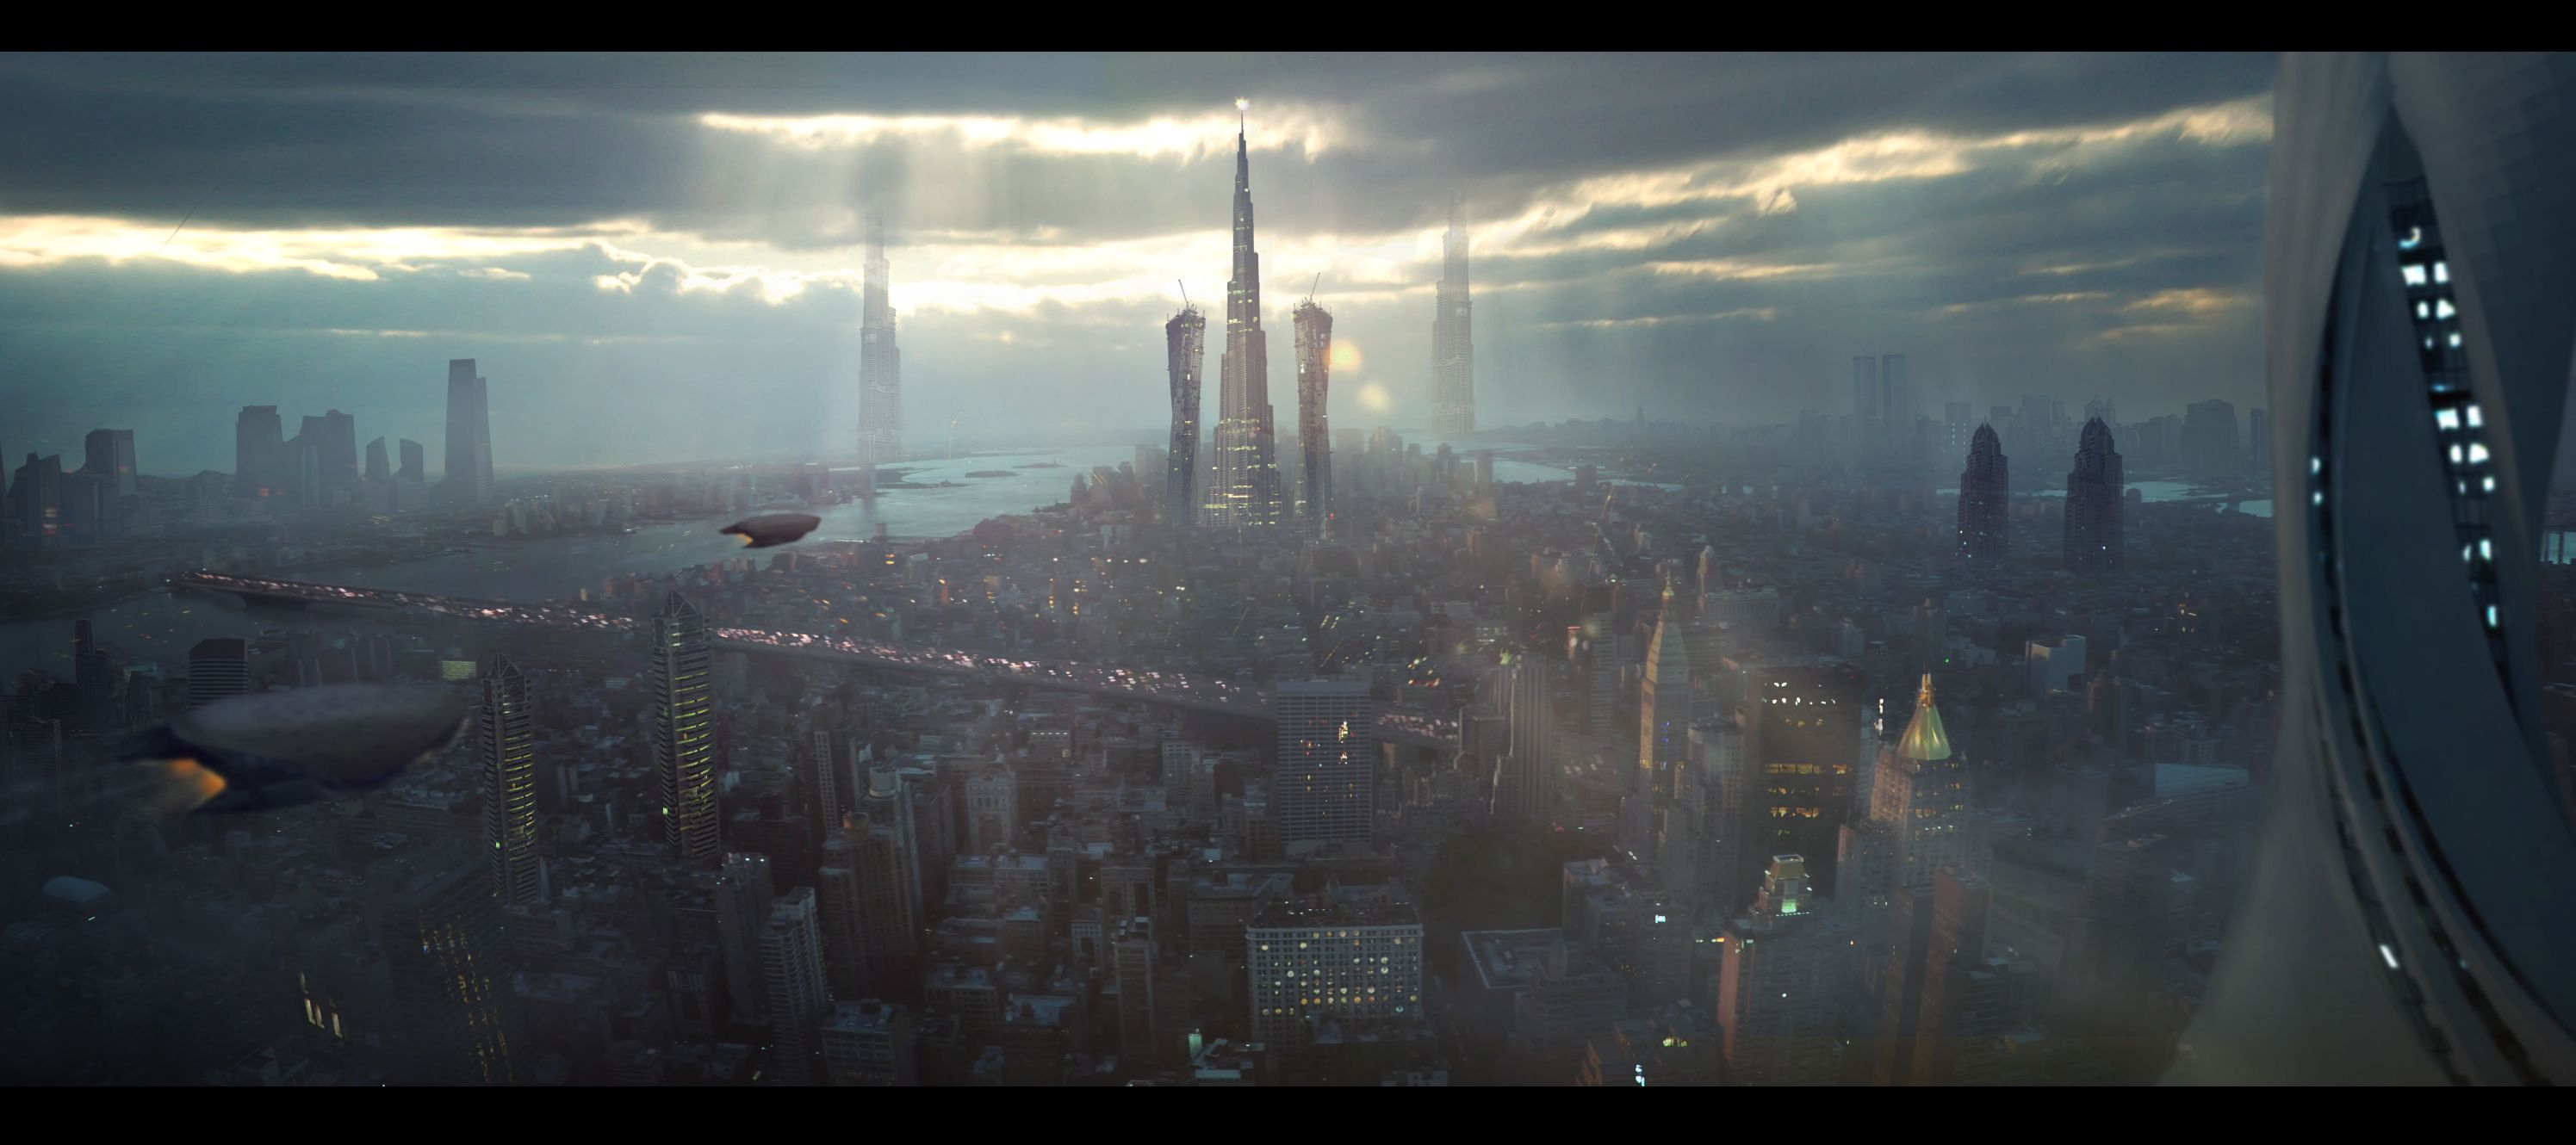 Pin on Digital Matte Painting